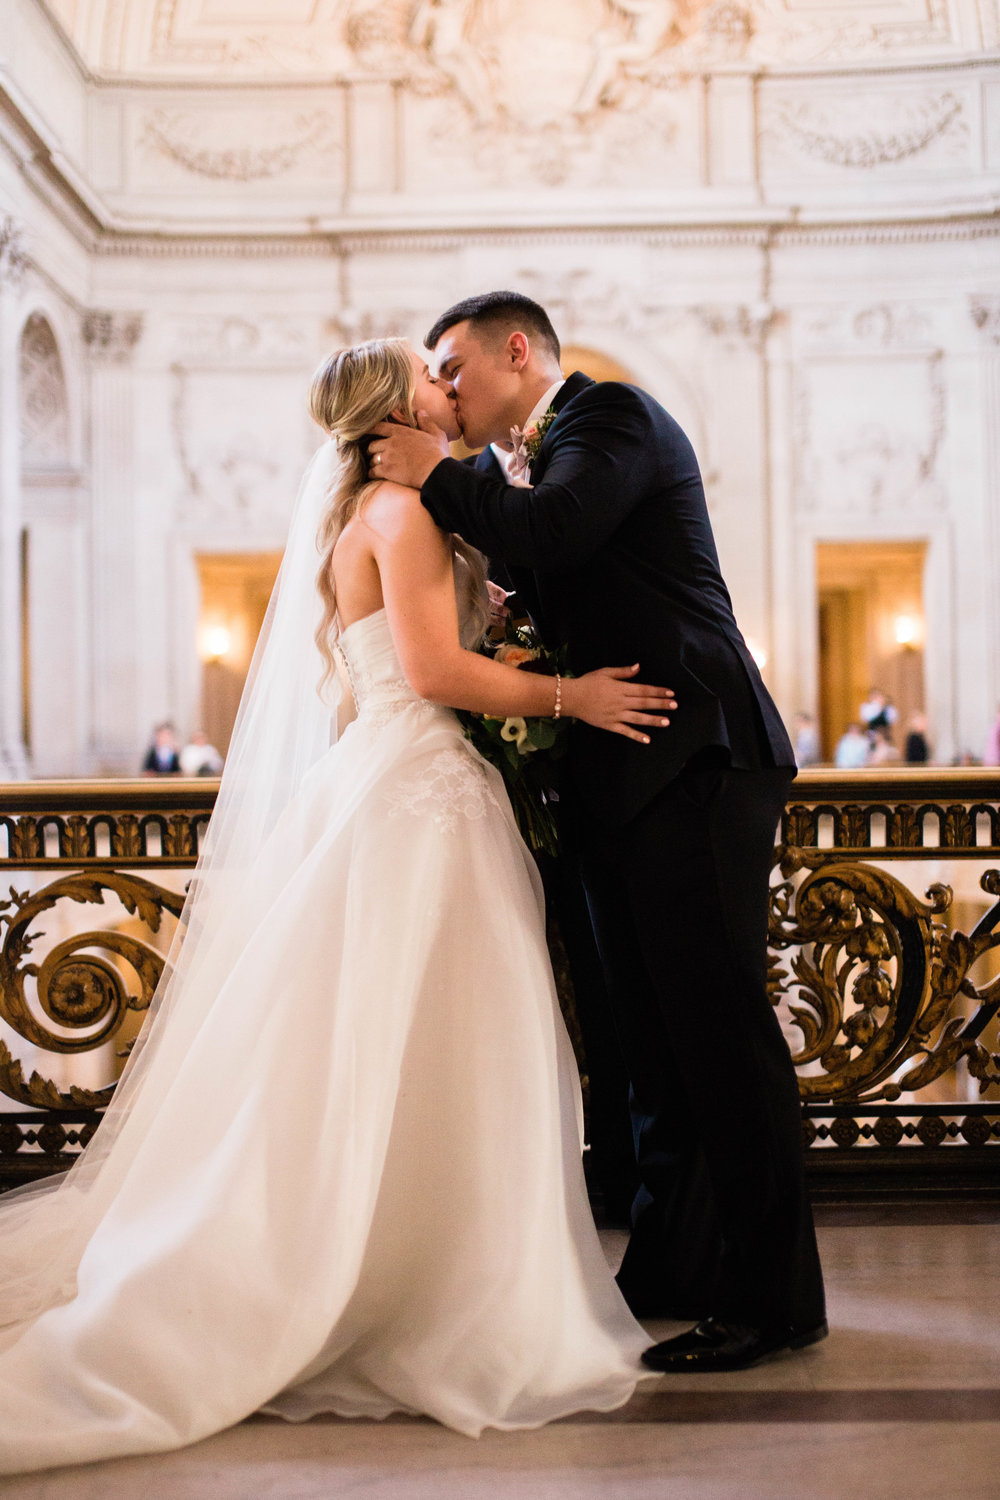 DennisRoyCoronel_Photography_SanFranciscoCityHall_Wedding-42.jpg